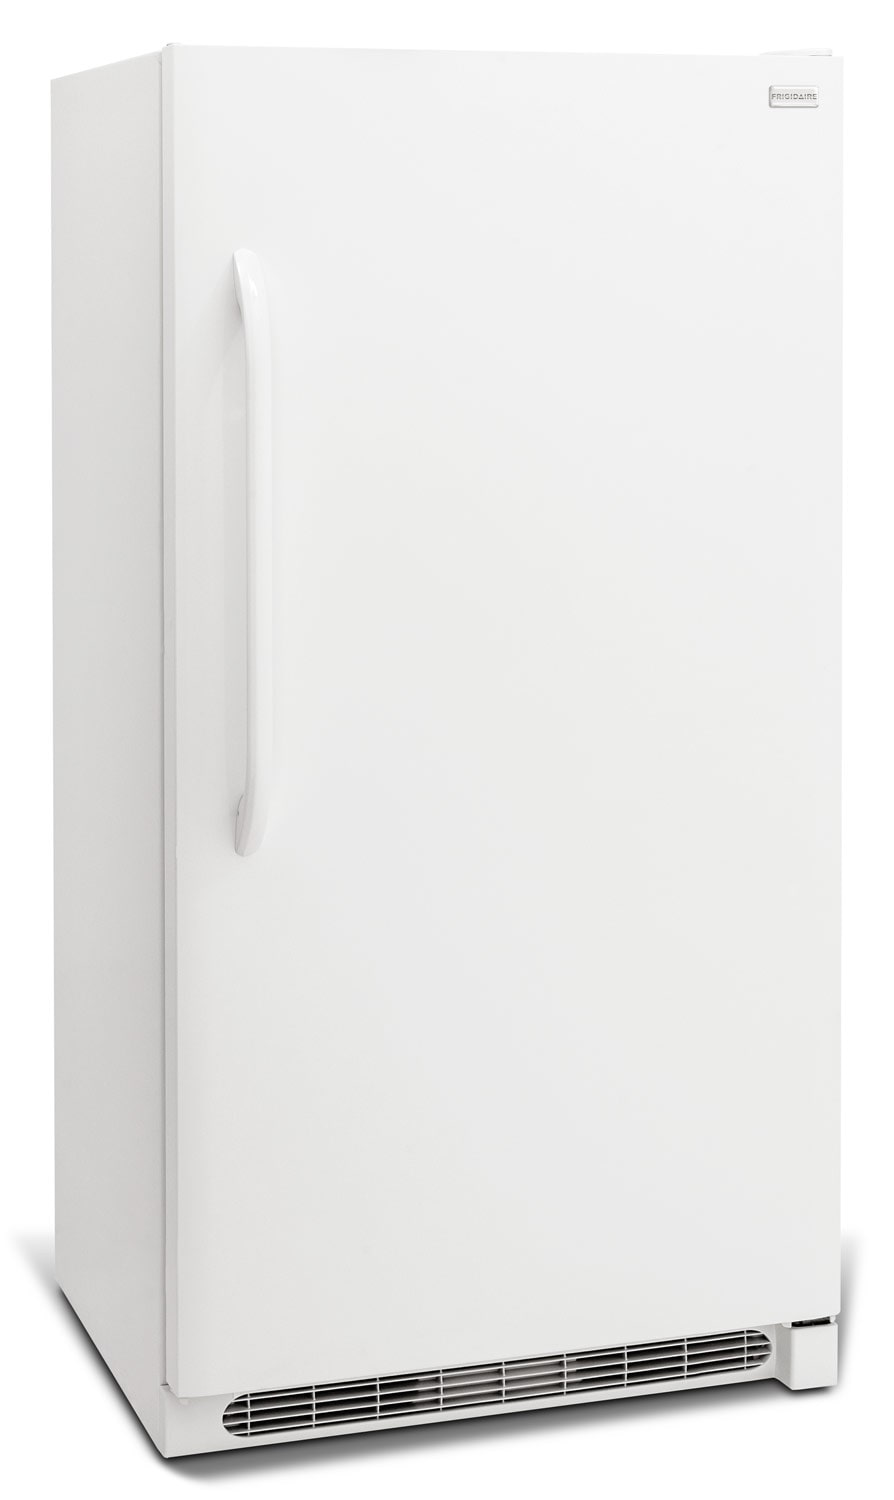 Refrigerators and Freezers - Frigidaire White Upright Freezer (16.9 Cu. Ft.) - FFVU17F4QW